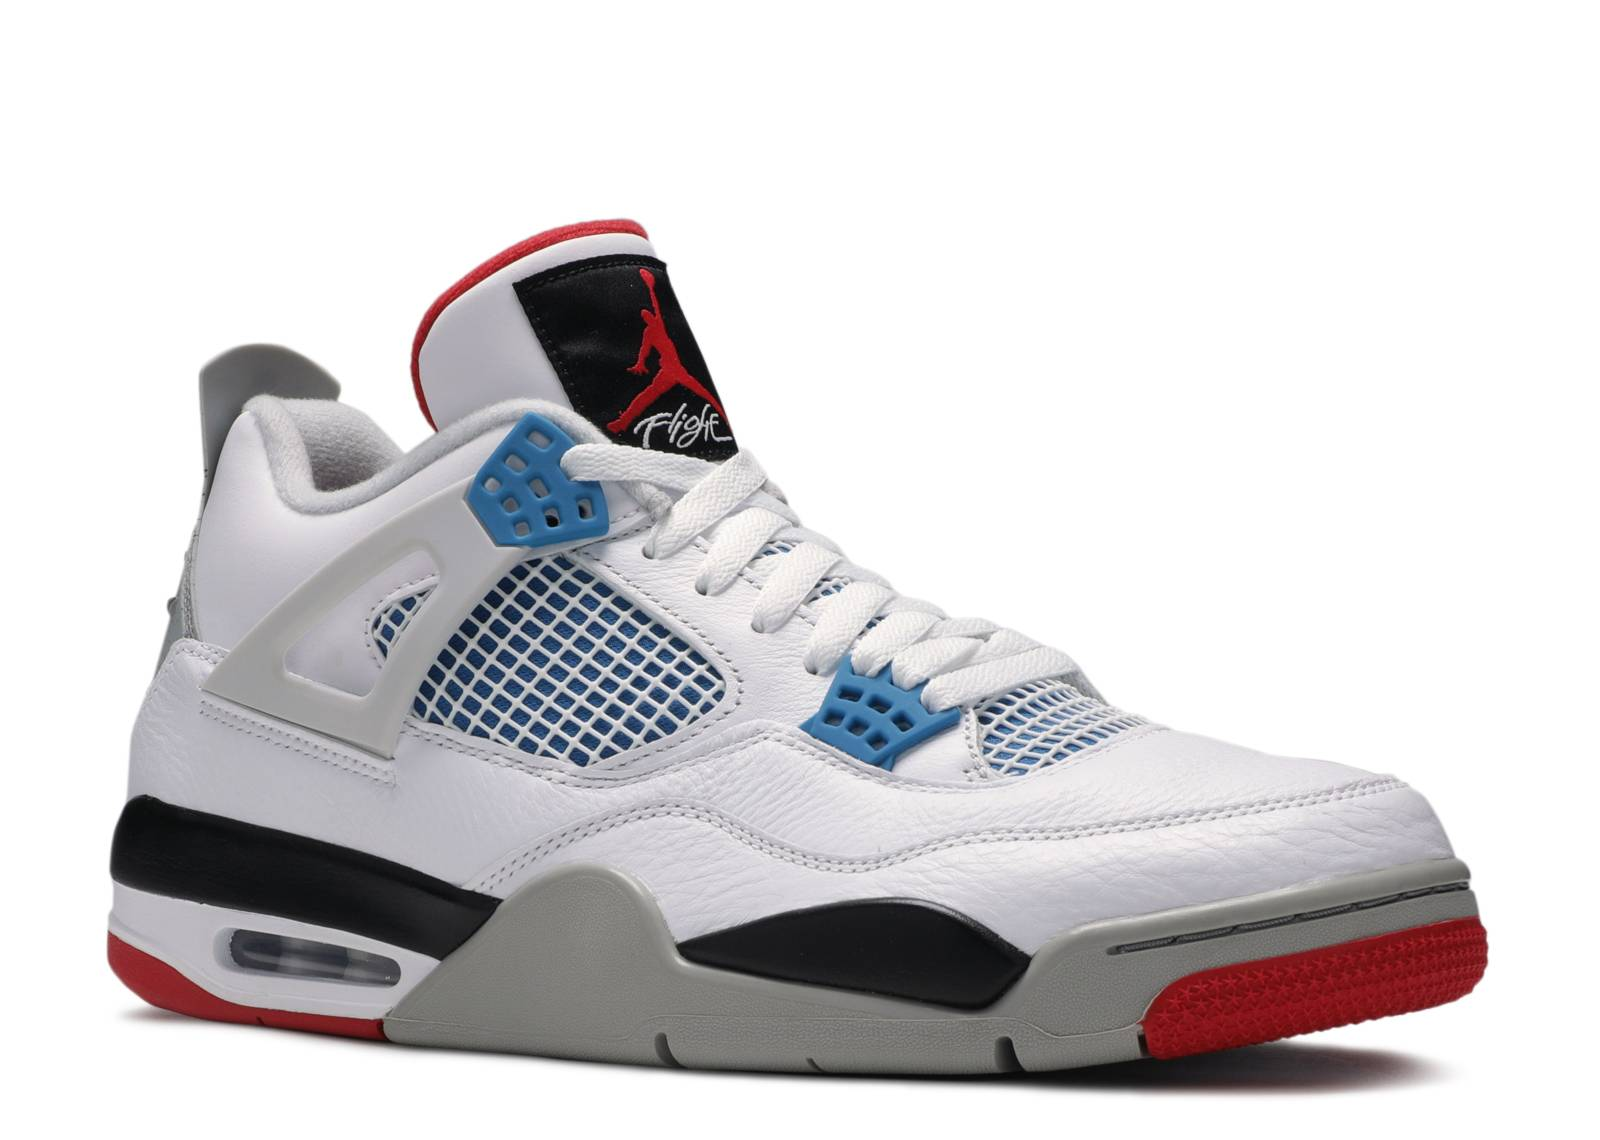 Nike Air Jordan 4 Retro SE 'What The'